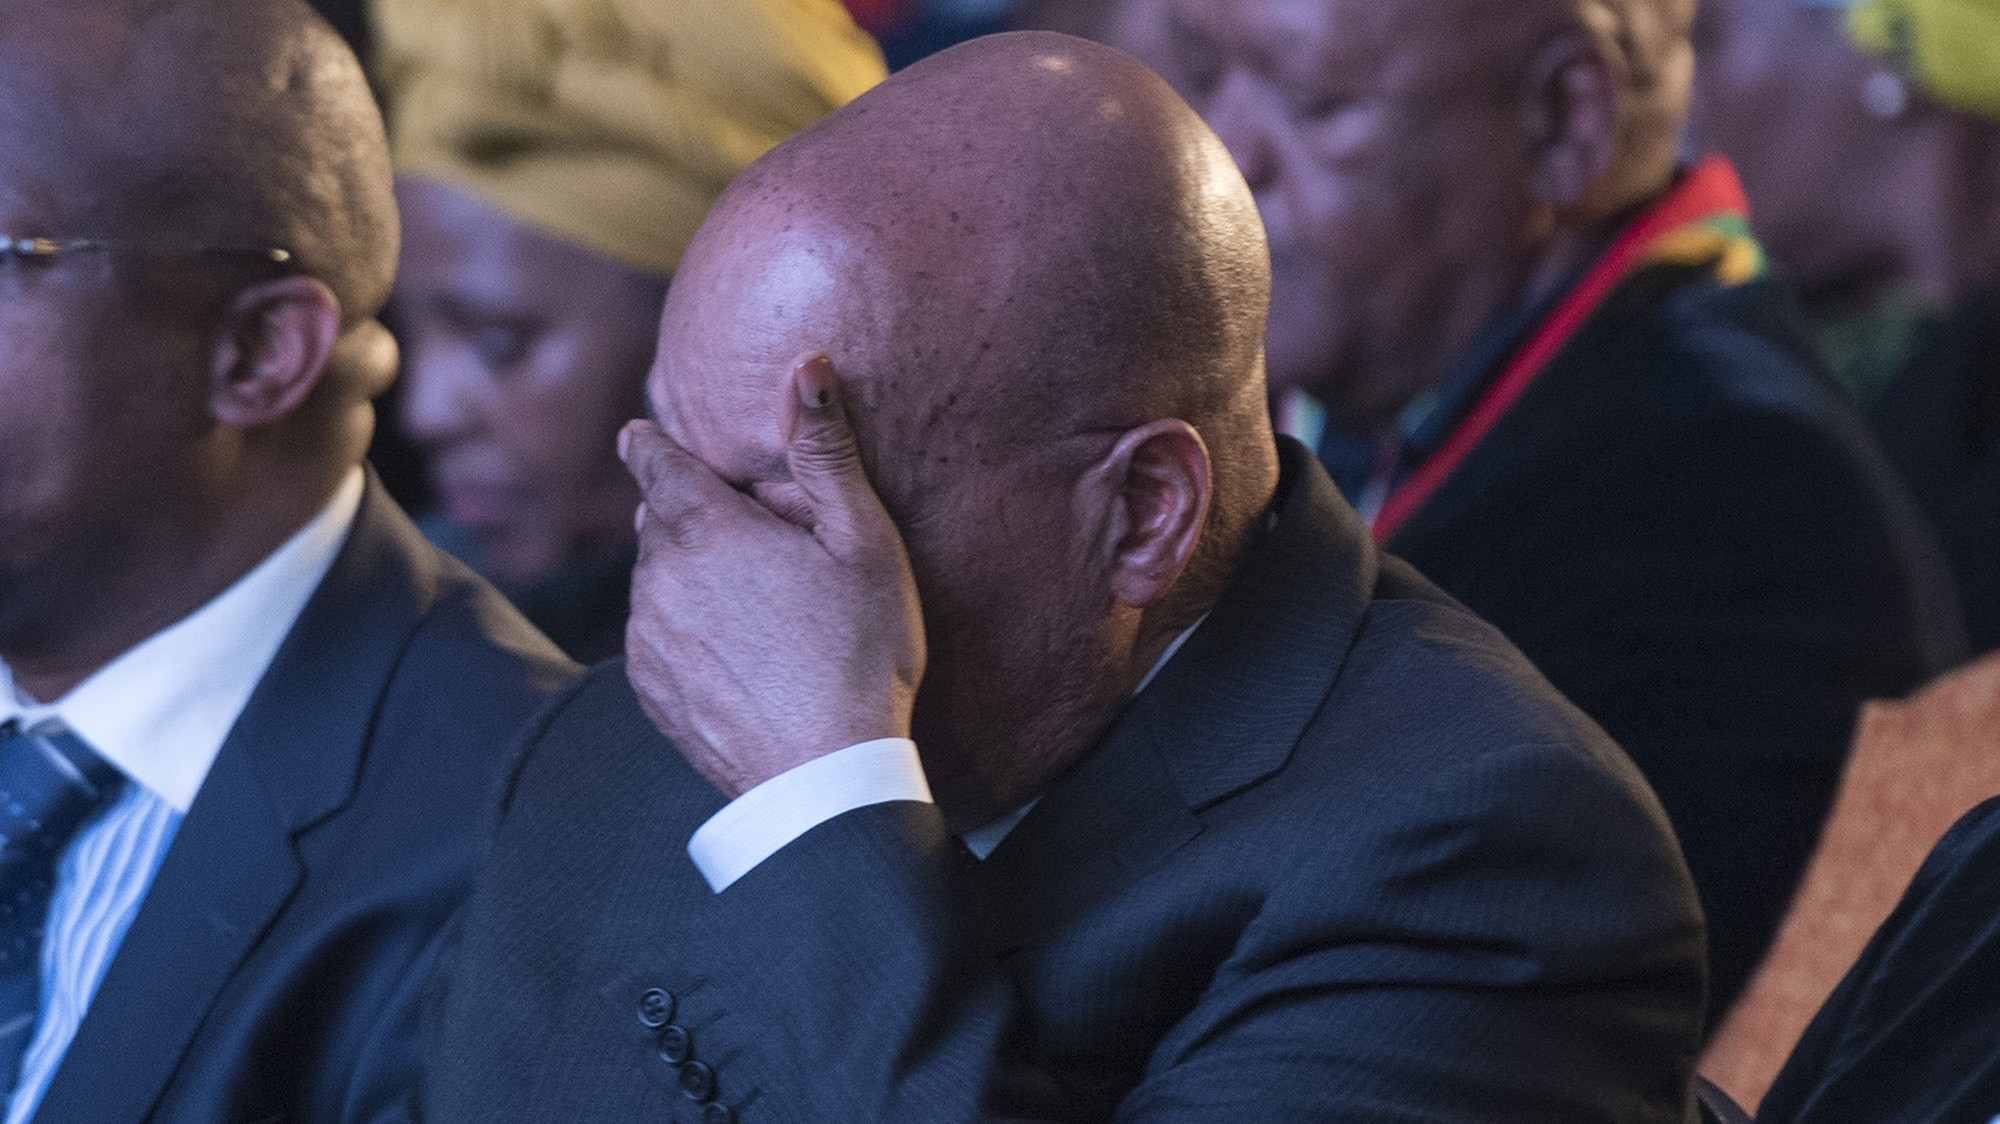 South Africa's ruling ANC got the worst clobbering since the end of apartheid